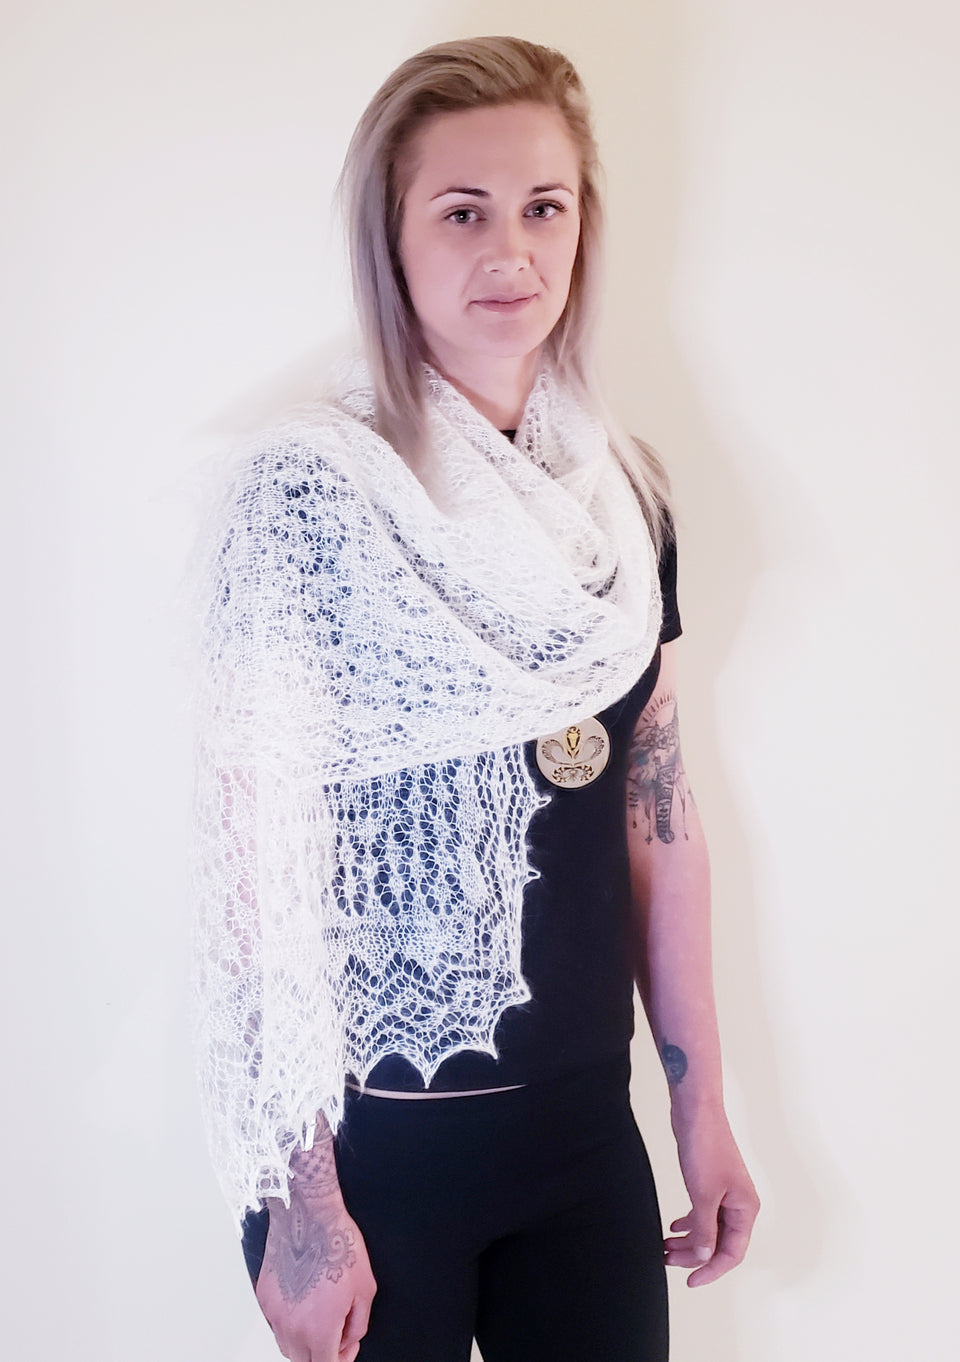 LACE SHAWL (valued higher than cashmere yarn & warmer than wool) combined with a trace of genuine silk thread.